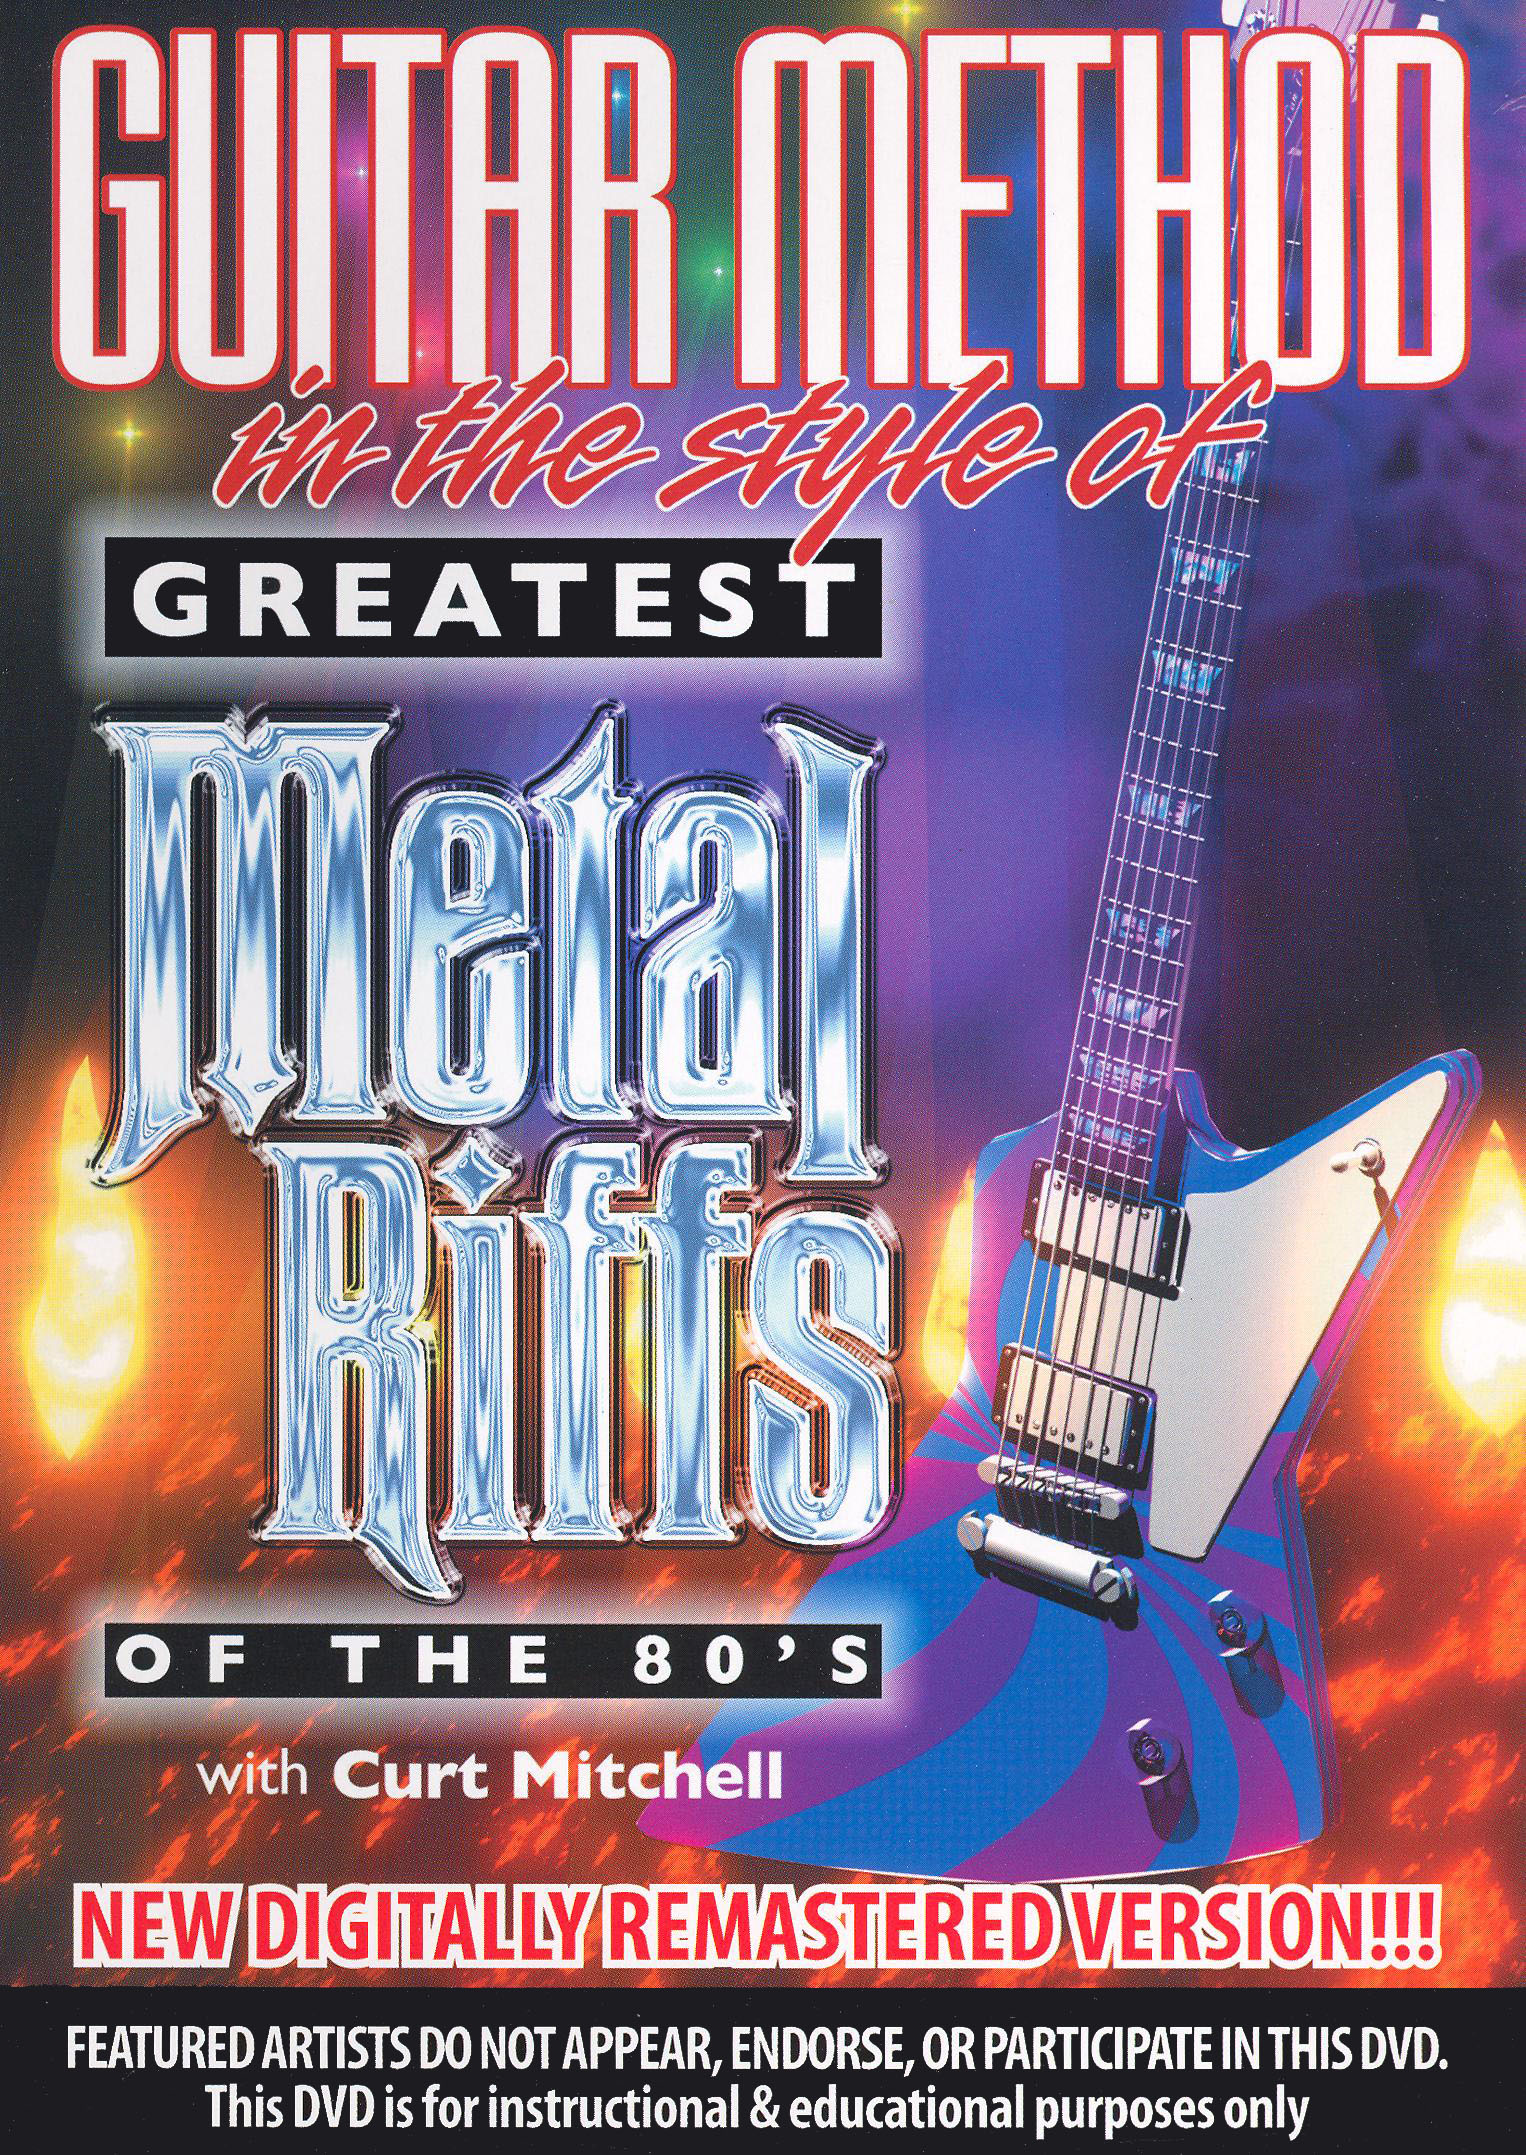 Guitar Method: The Greatest Metal Riffs of the '80s!